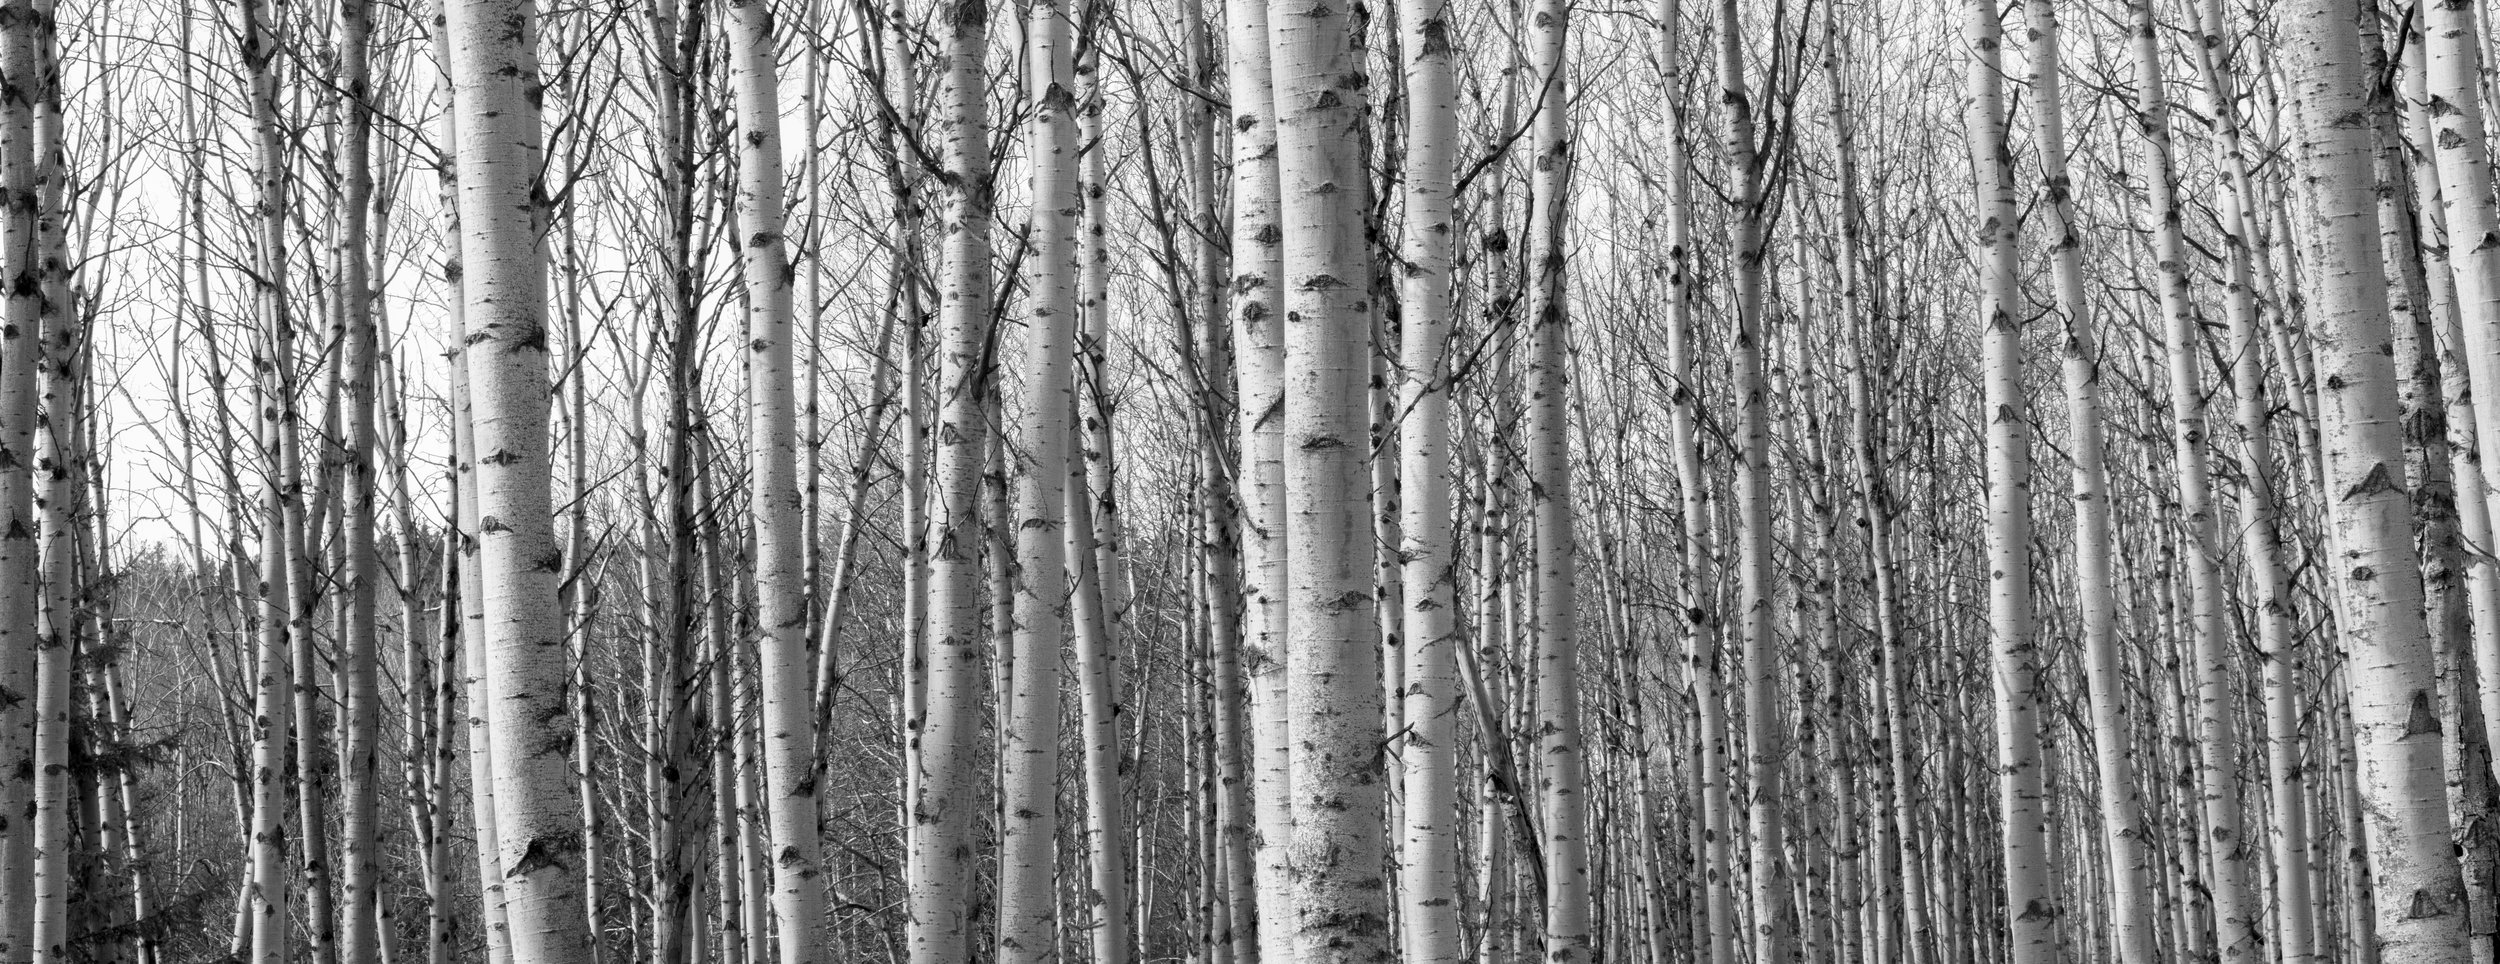 Sea of Birch